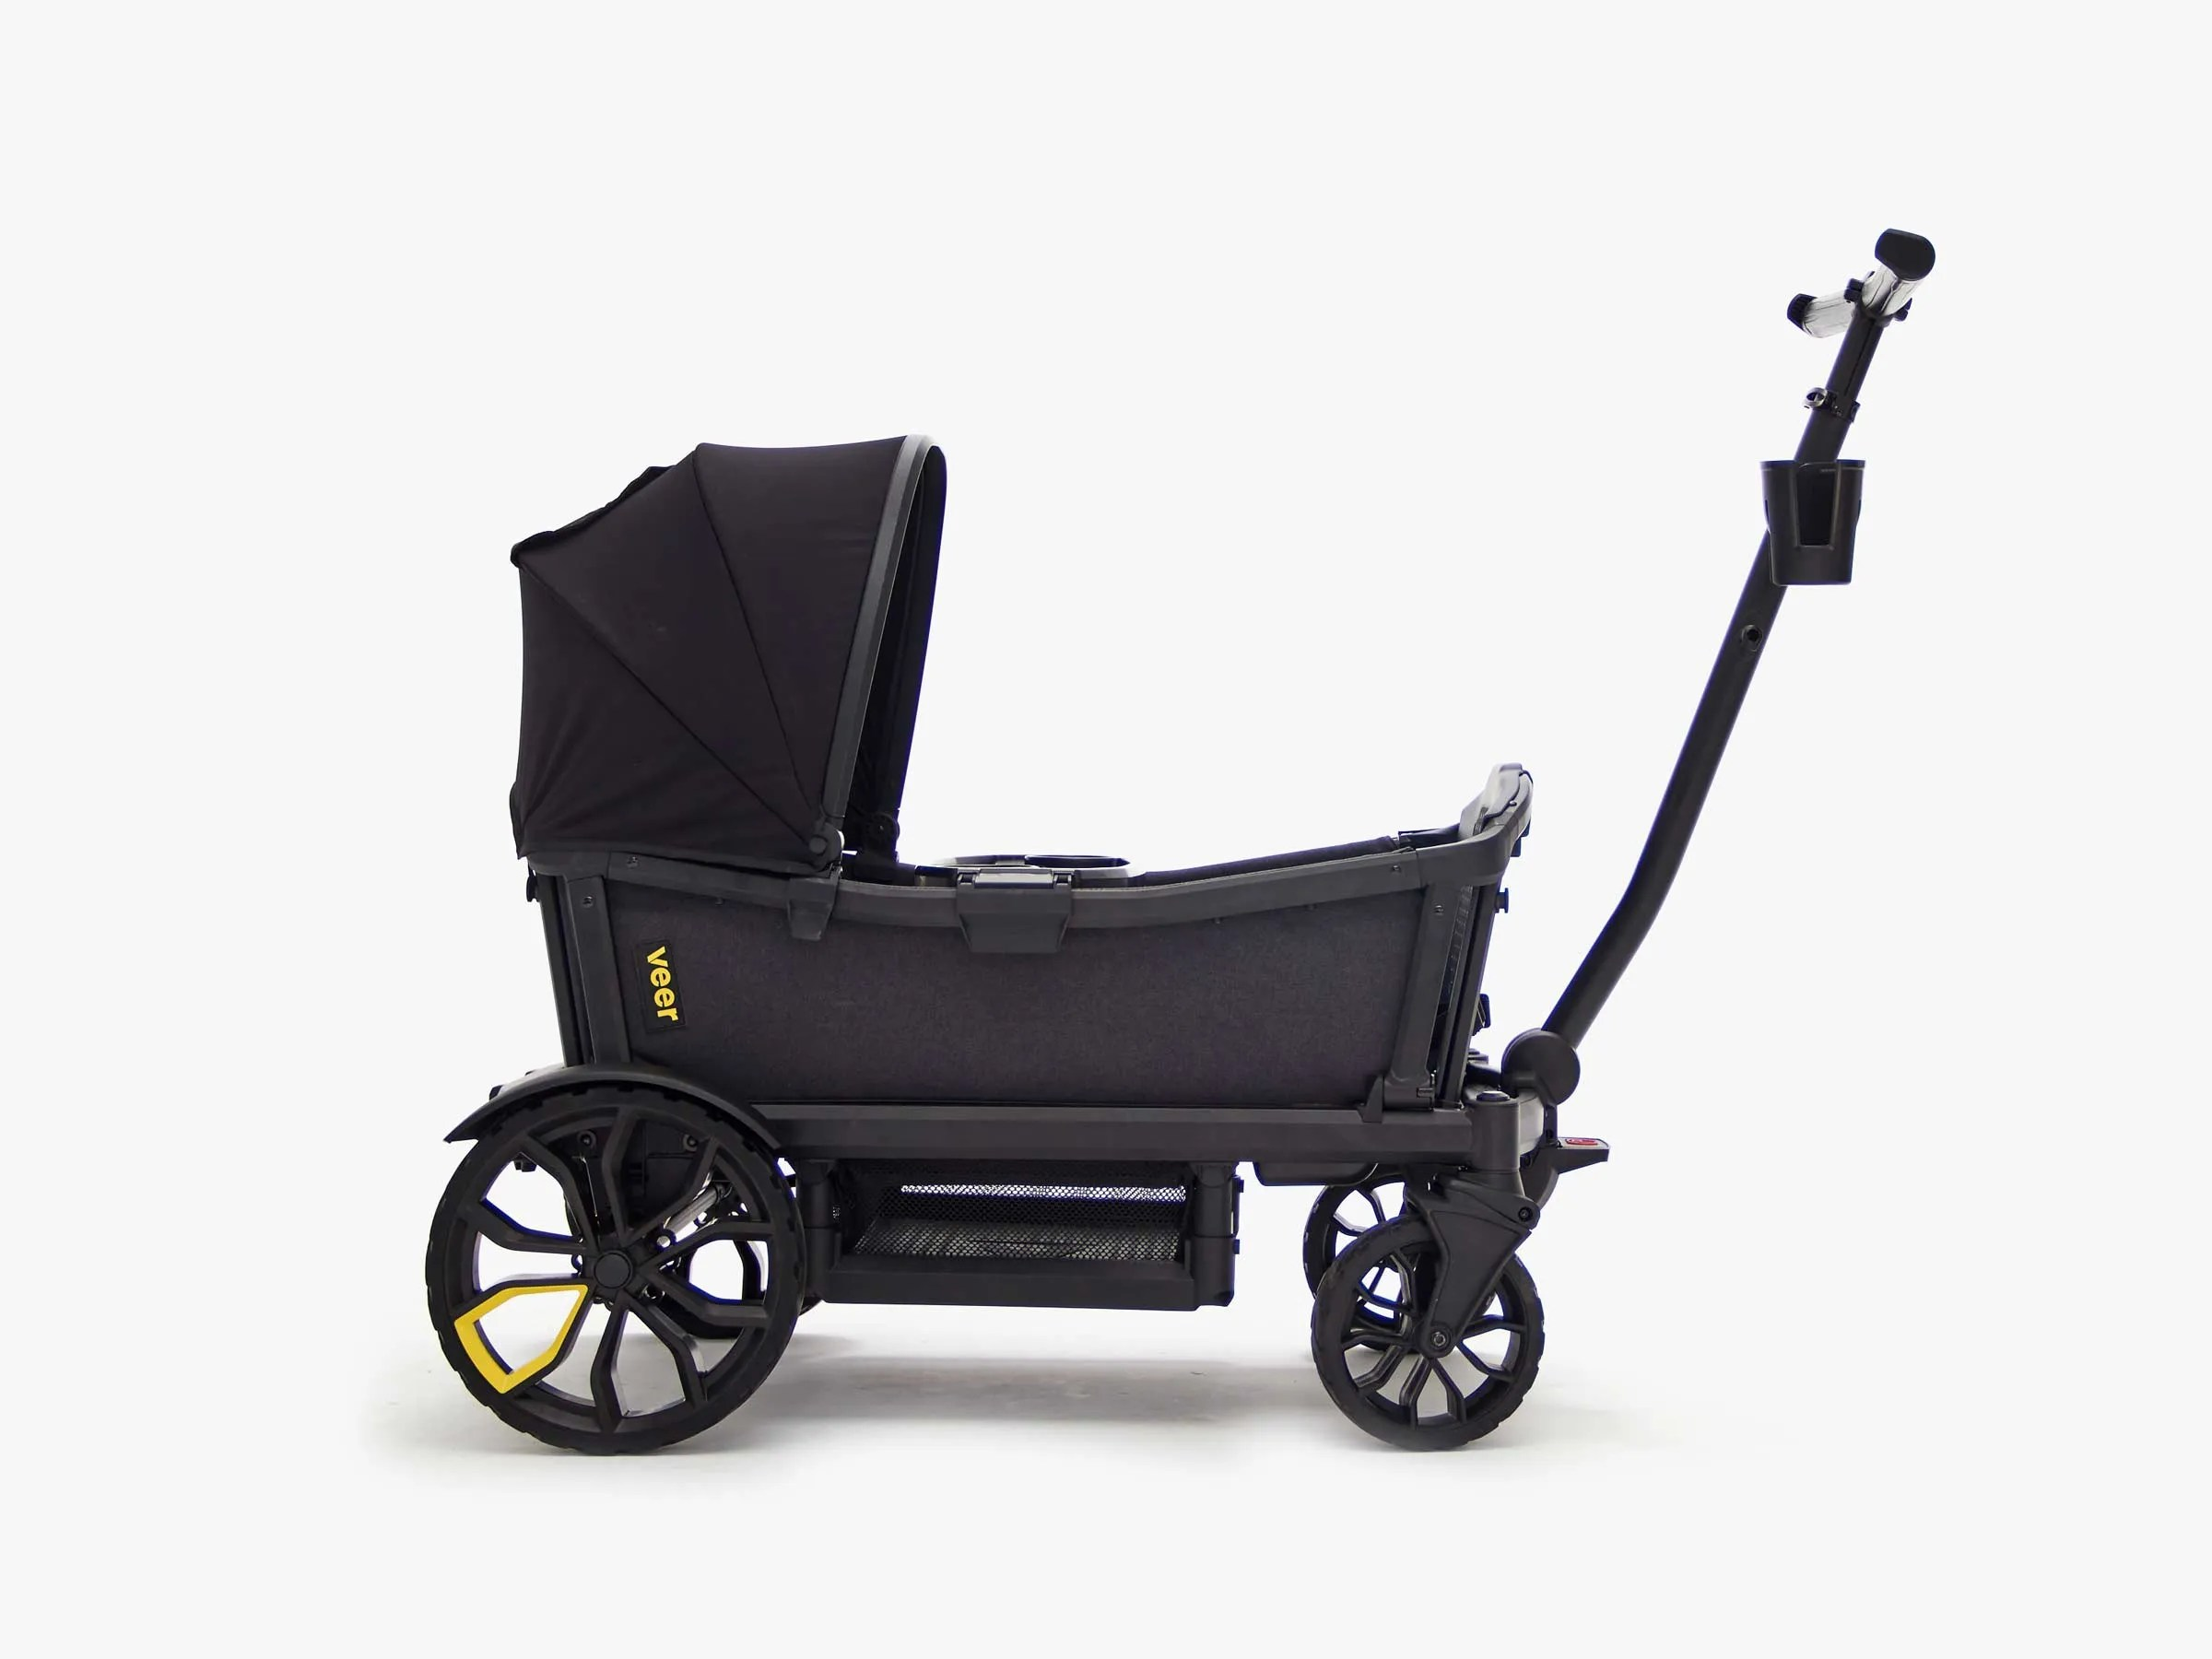 Peculiar Kids Fable Wagons And Wagons Veer Cruiser Veer Cruiser It Carries Your Kids Kids On Sale baby Wagons For Kids